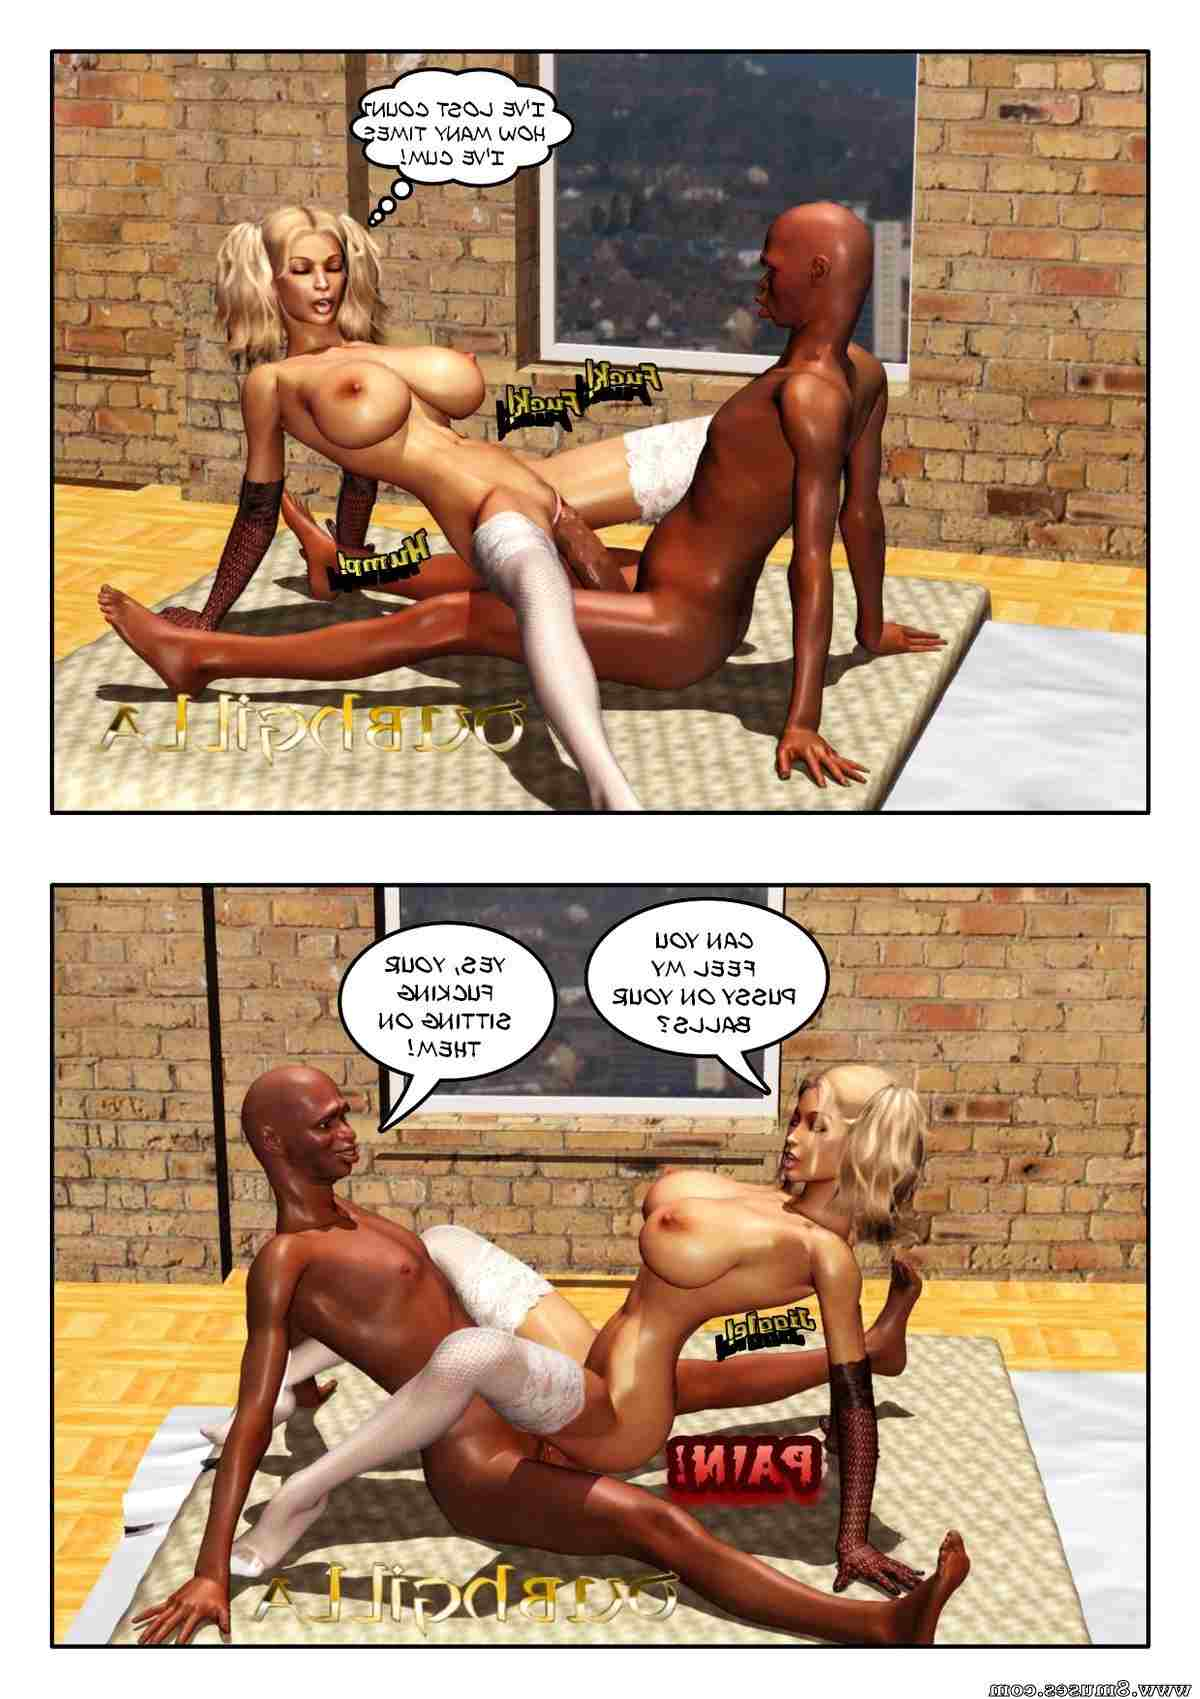 Blacknwhitecomics_com-Comix/BlackonWhite3D/Tim-Dia Tim_Dia__8muses_-_Sex_and_Porn_Comics_22.jpg